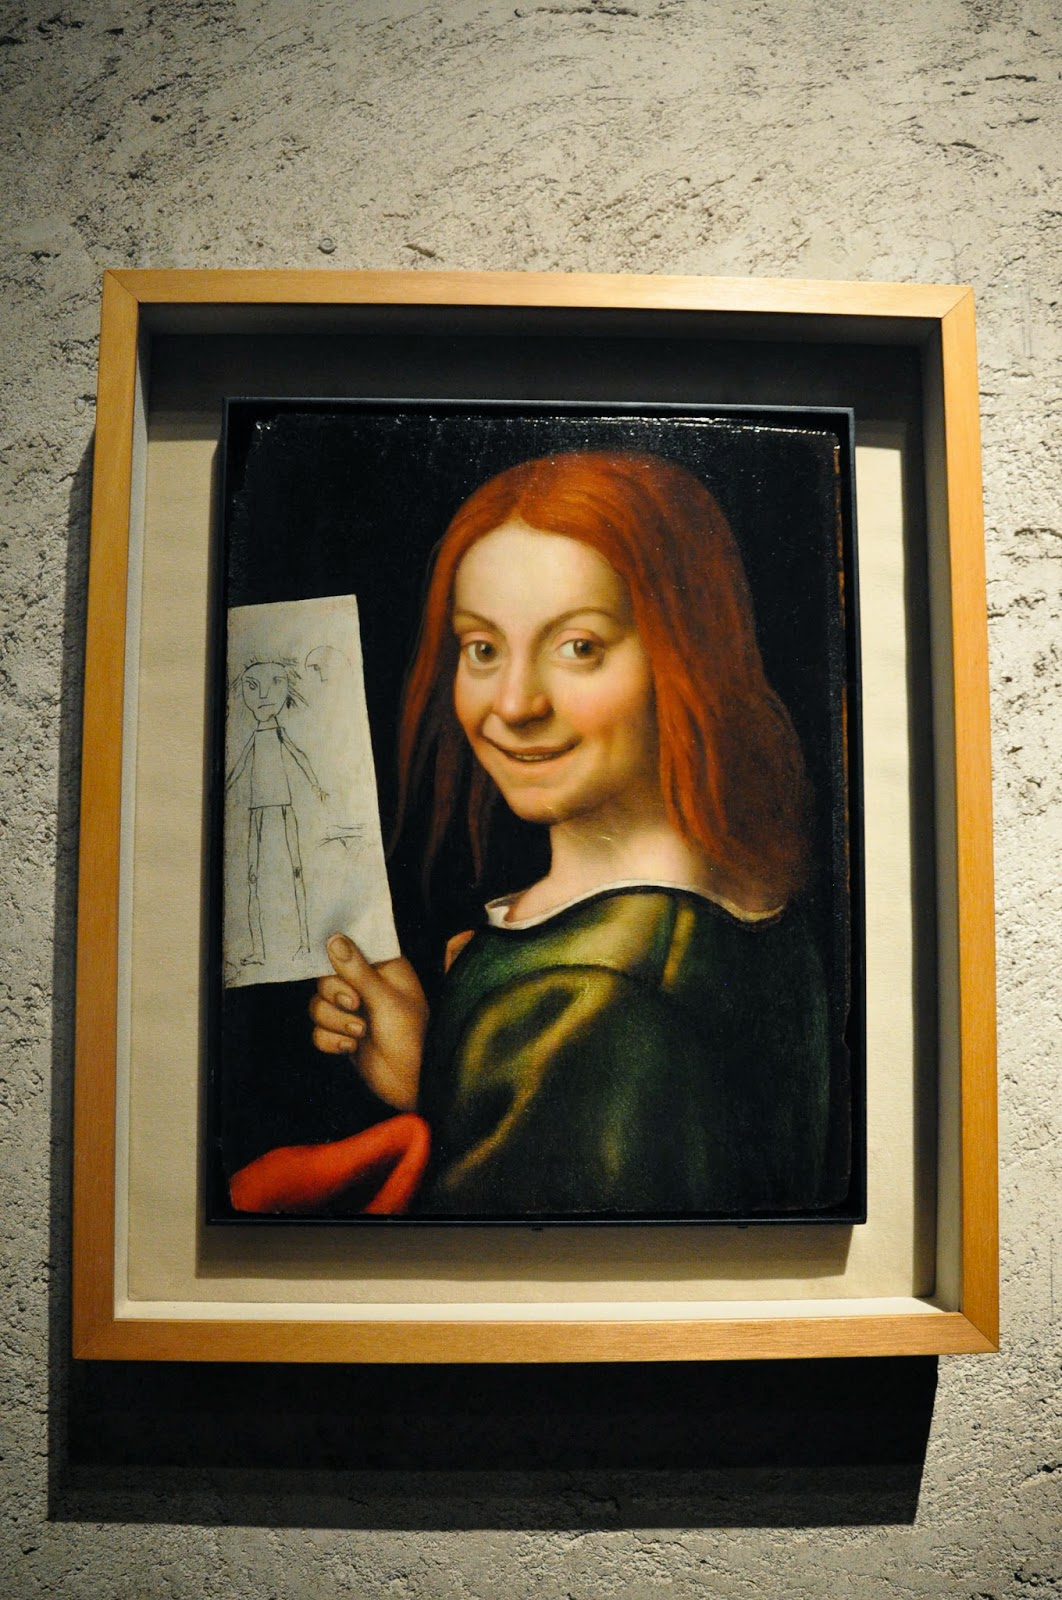 A painting by Giovani Francesco Caroto in the Museum of Castelvecchio in Verona